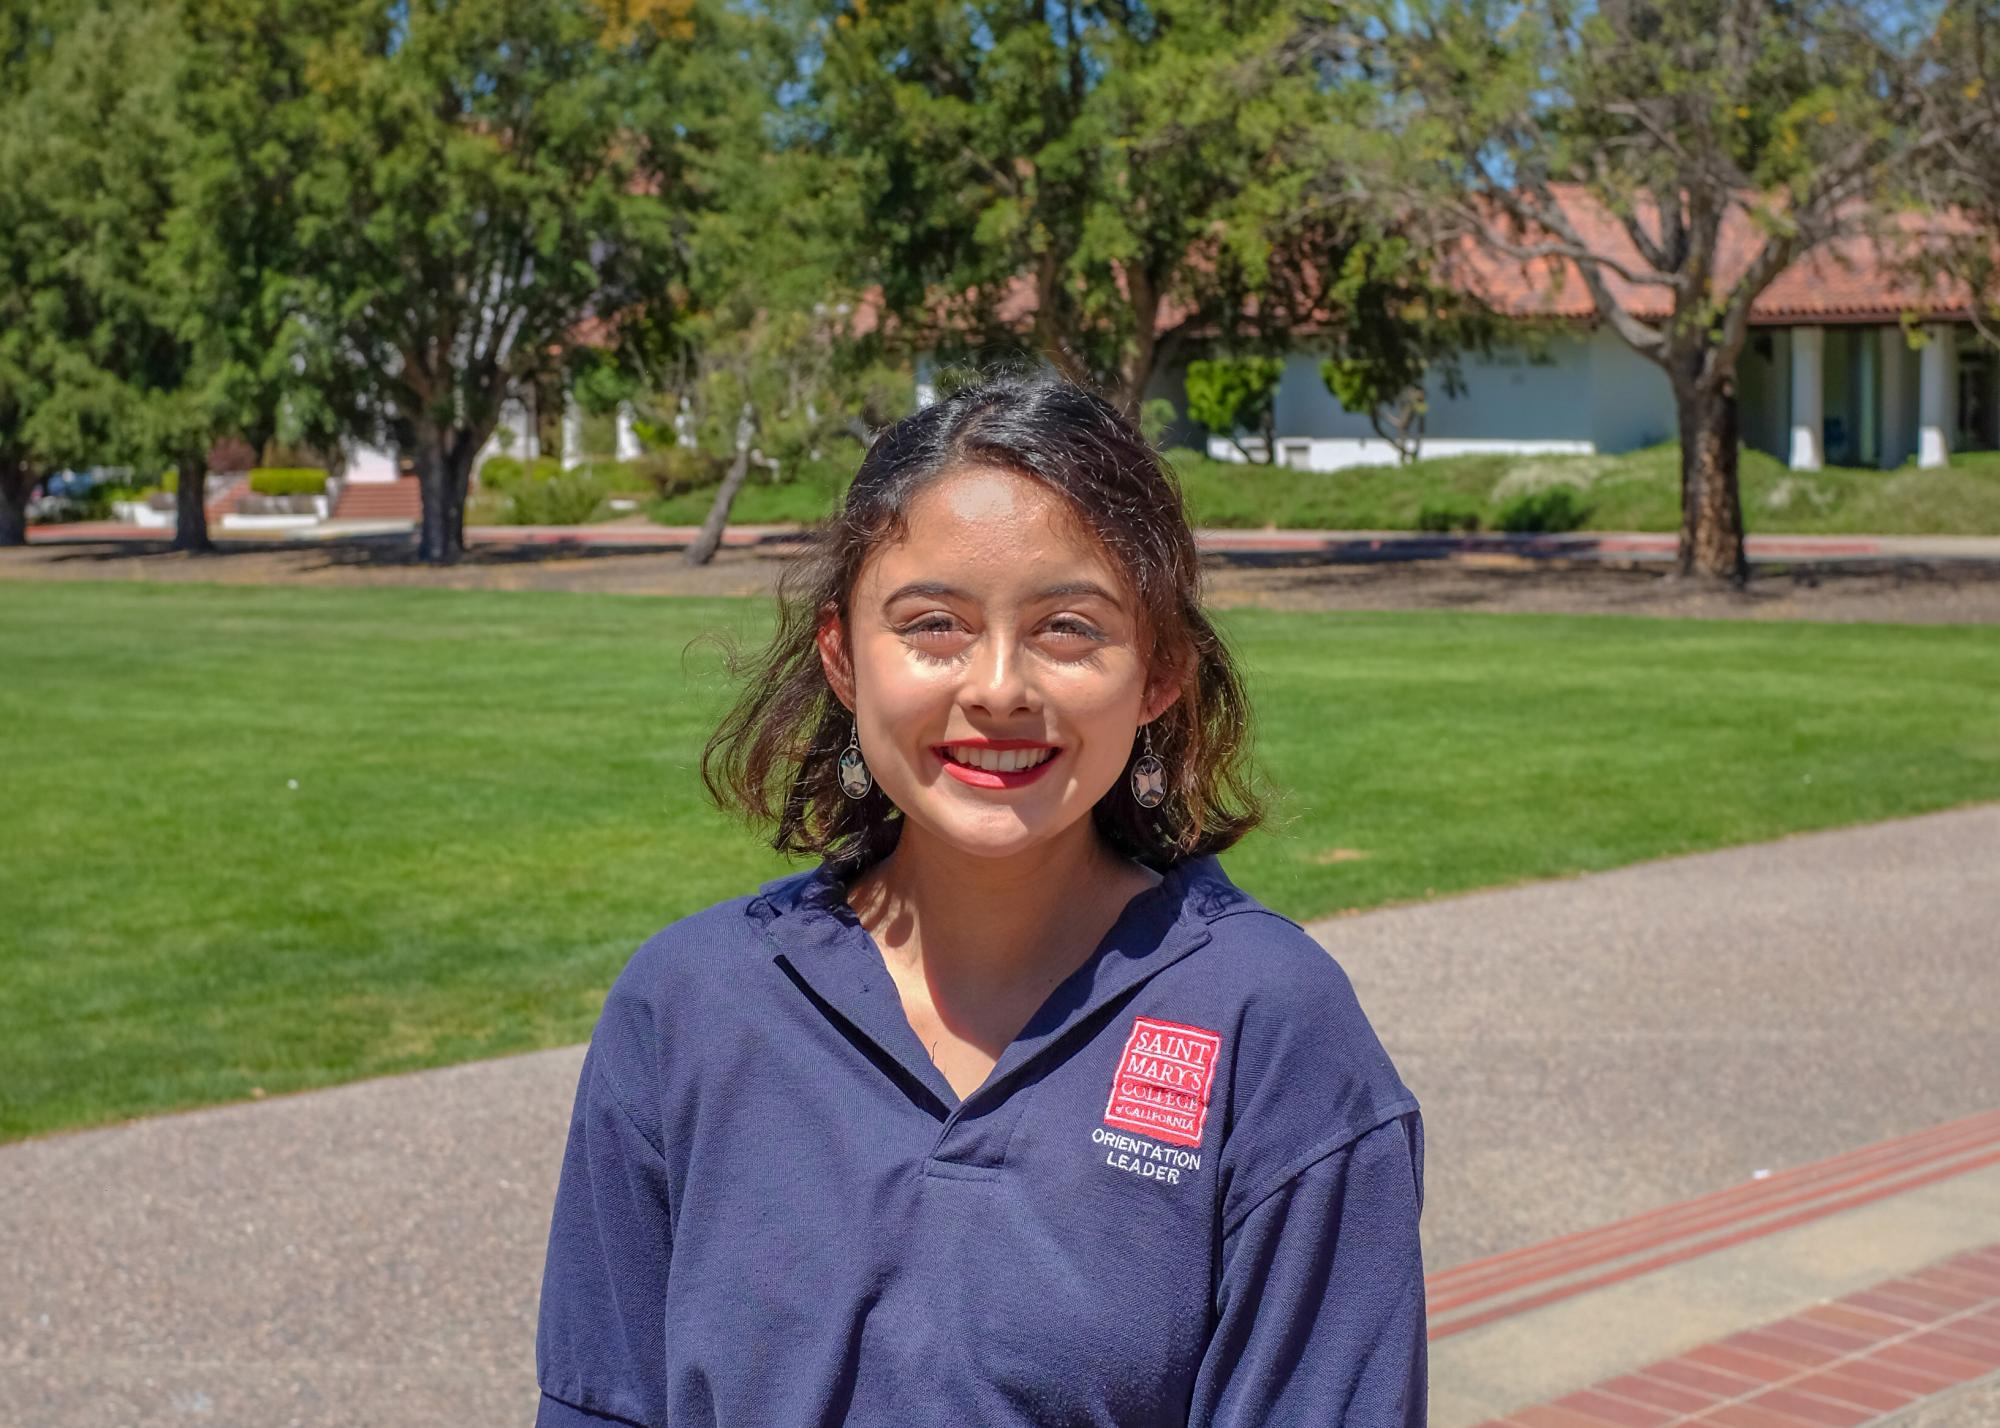 Hello! I'm Imelda Jimenez I'm from San Luis Obispo, I'm a Biology major with a minor in Anthropology. I'm part of La Hermandad and the High Potential Program. I am so excited to meet all of you!